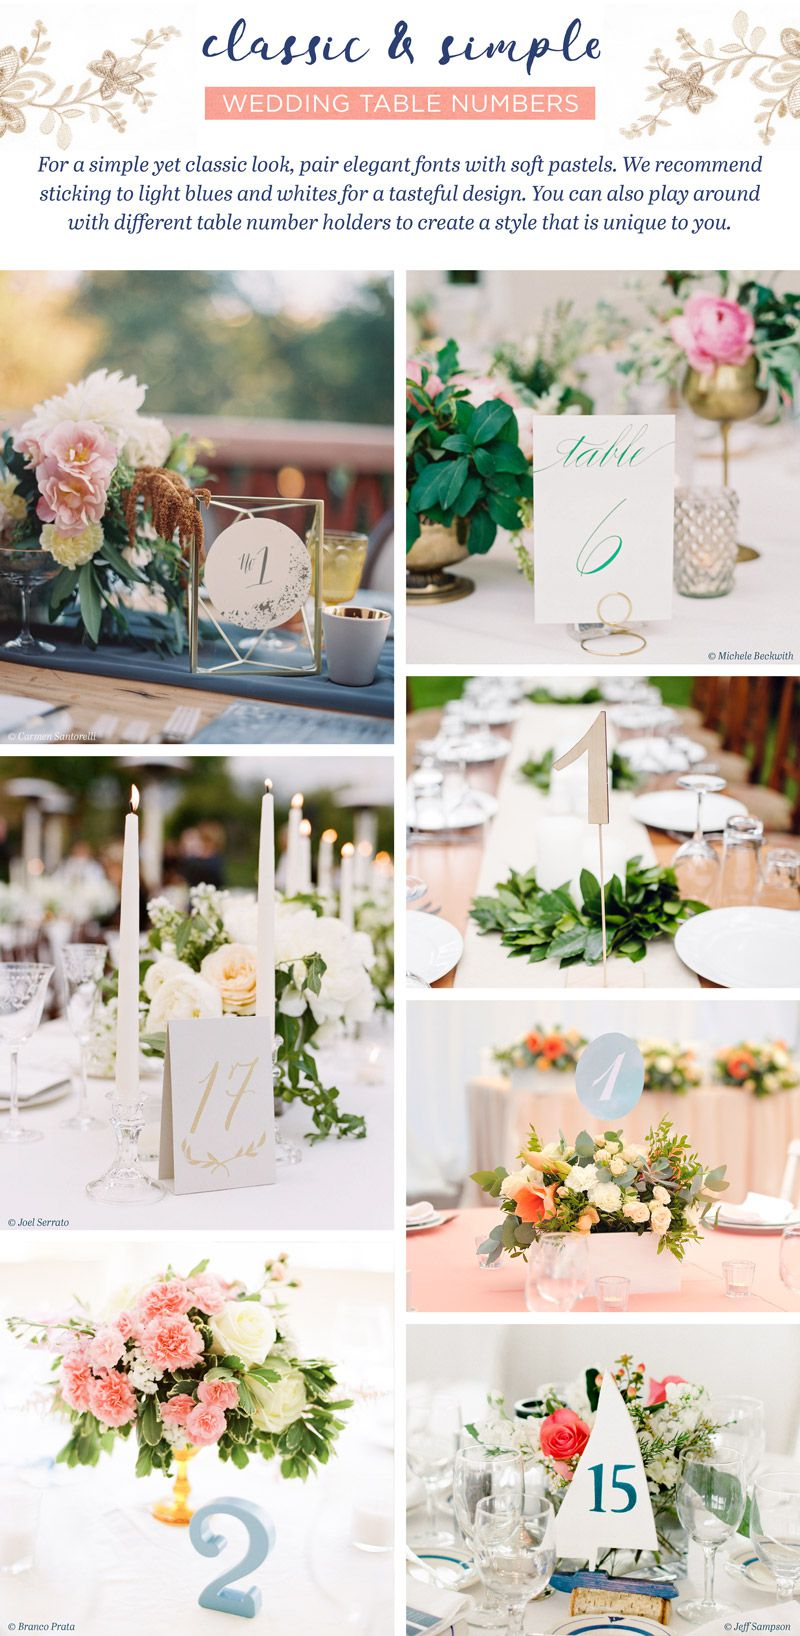 28 Wedding Table Number Ideas for Your Special Day - Rustic Wedding Chic